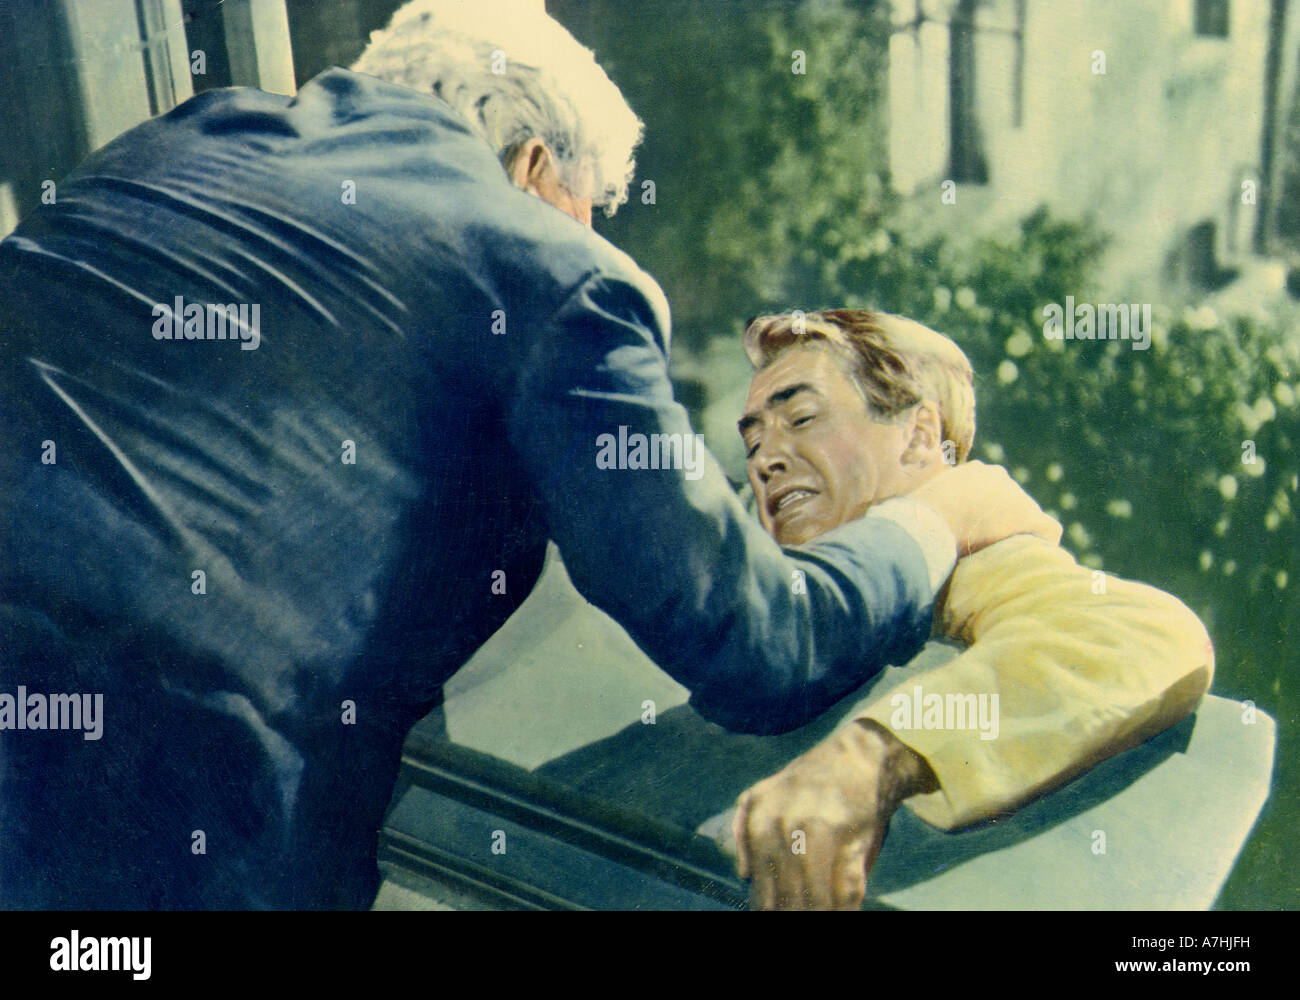 REAR WINDOW 1954 Paramount film with James Stewart at right, directed by Alfred Hitchcock - Stock Image